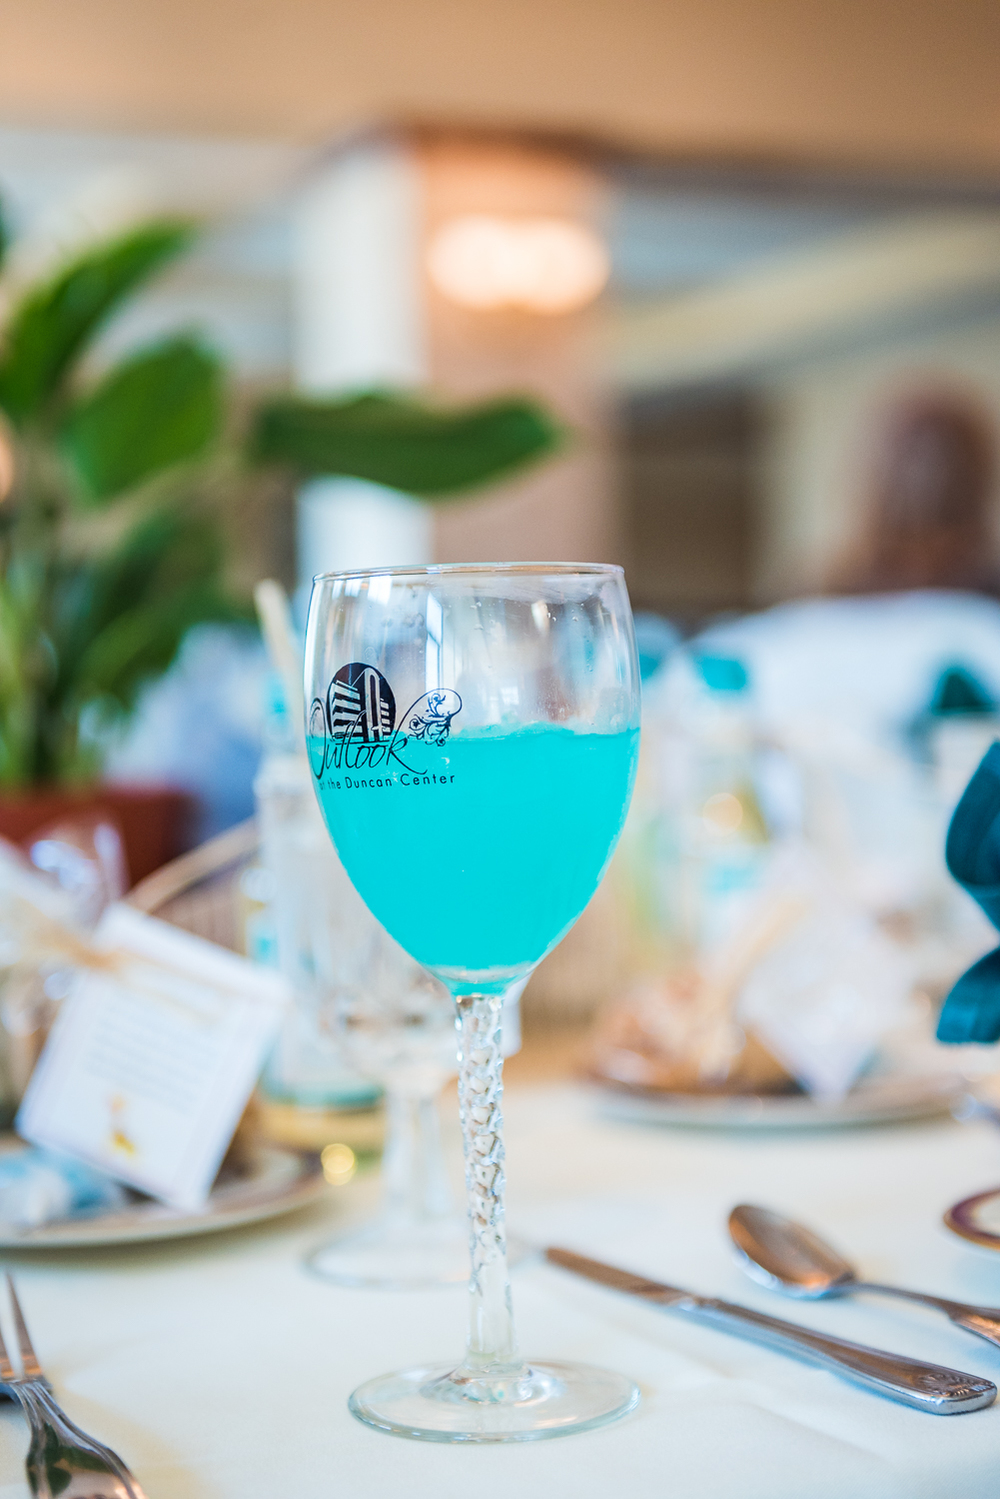 20160326 - Sam's Baby Shower LR-16.jpg